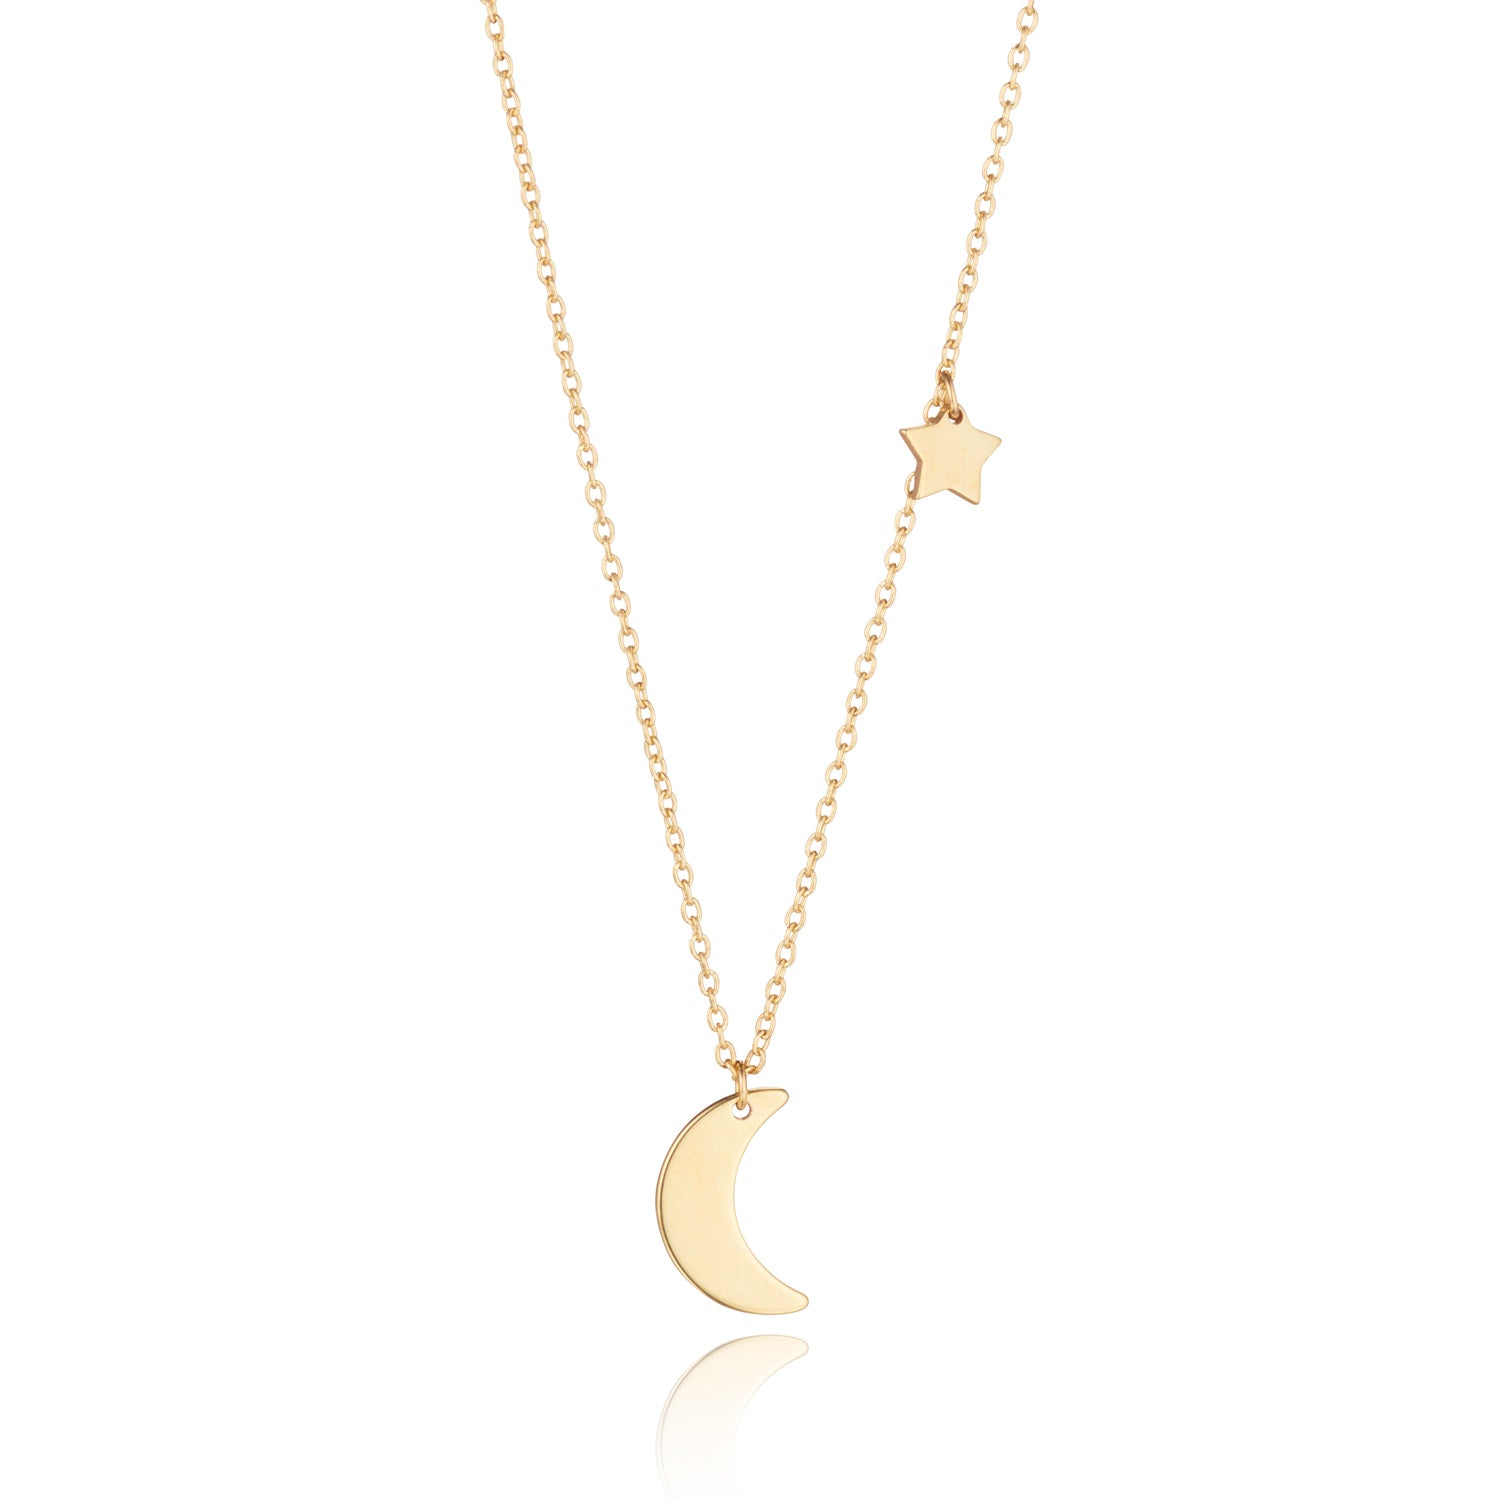 9kt Gold Moon & Star Necklace - MoMuse Jewellery